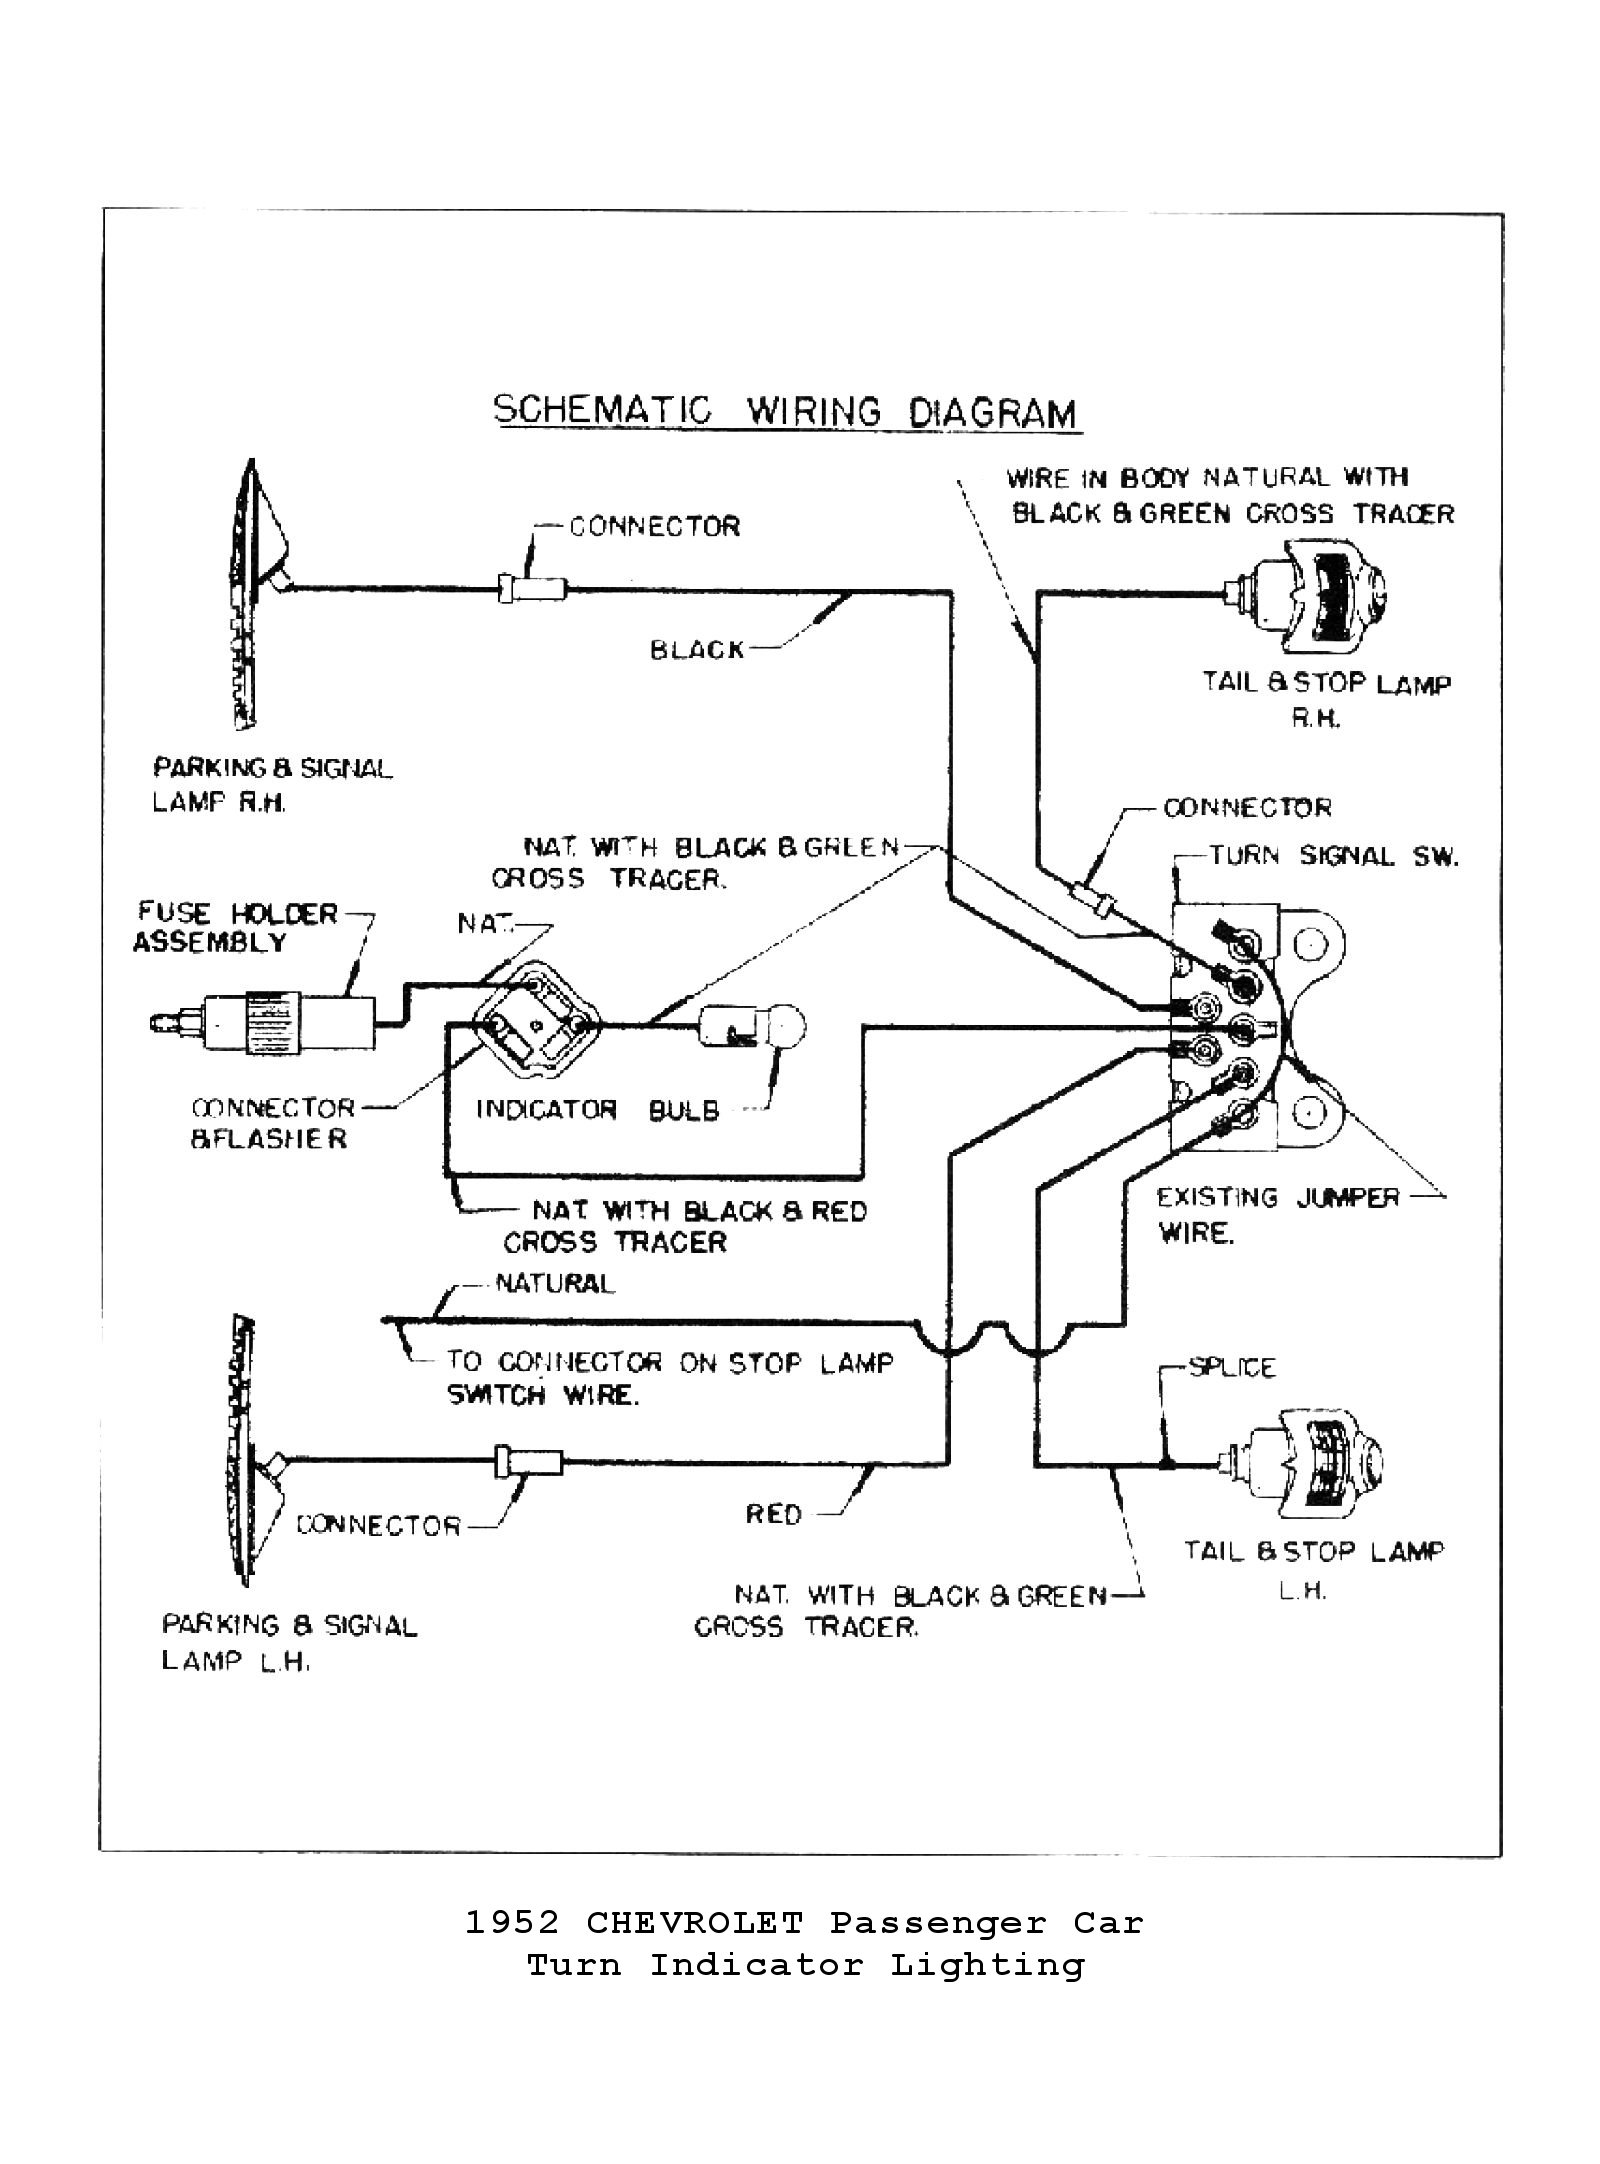 1951 Chevy Car Fleetline Wire Diagram